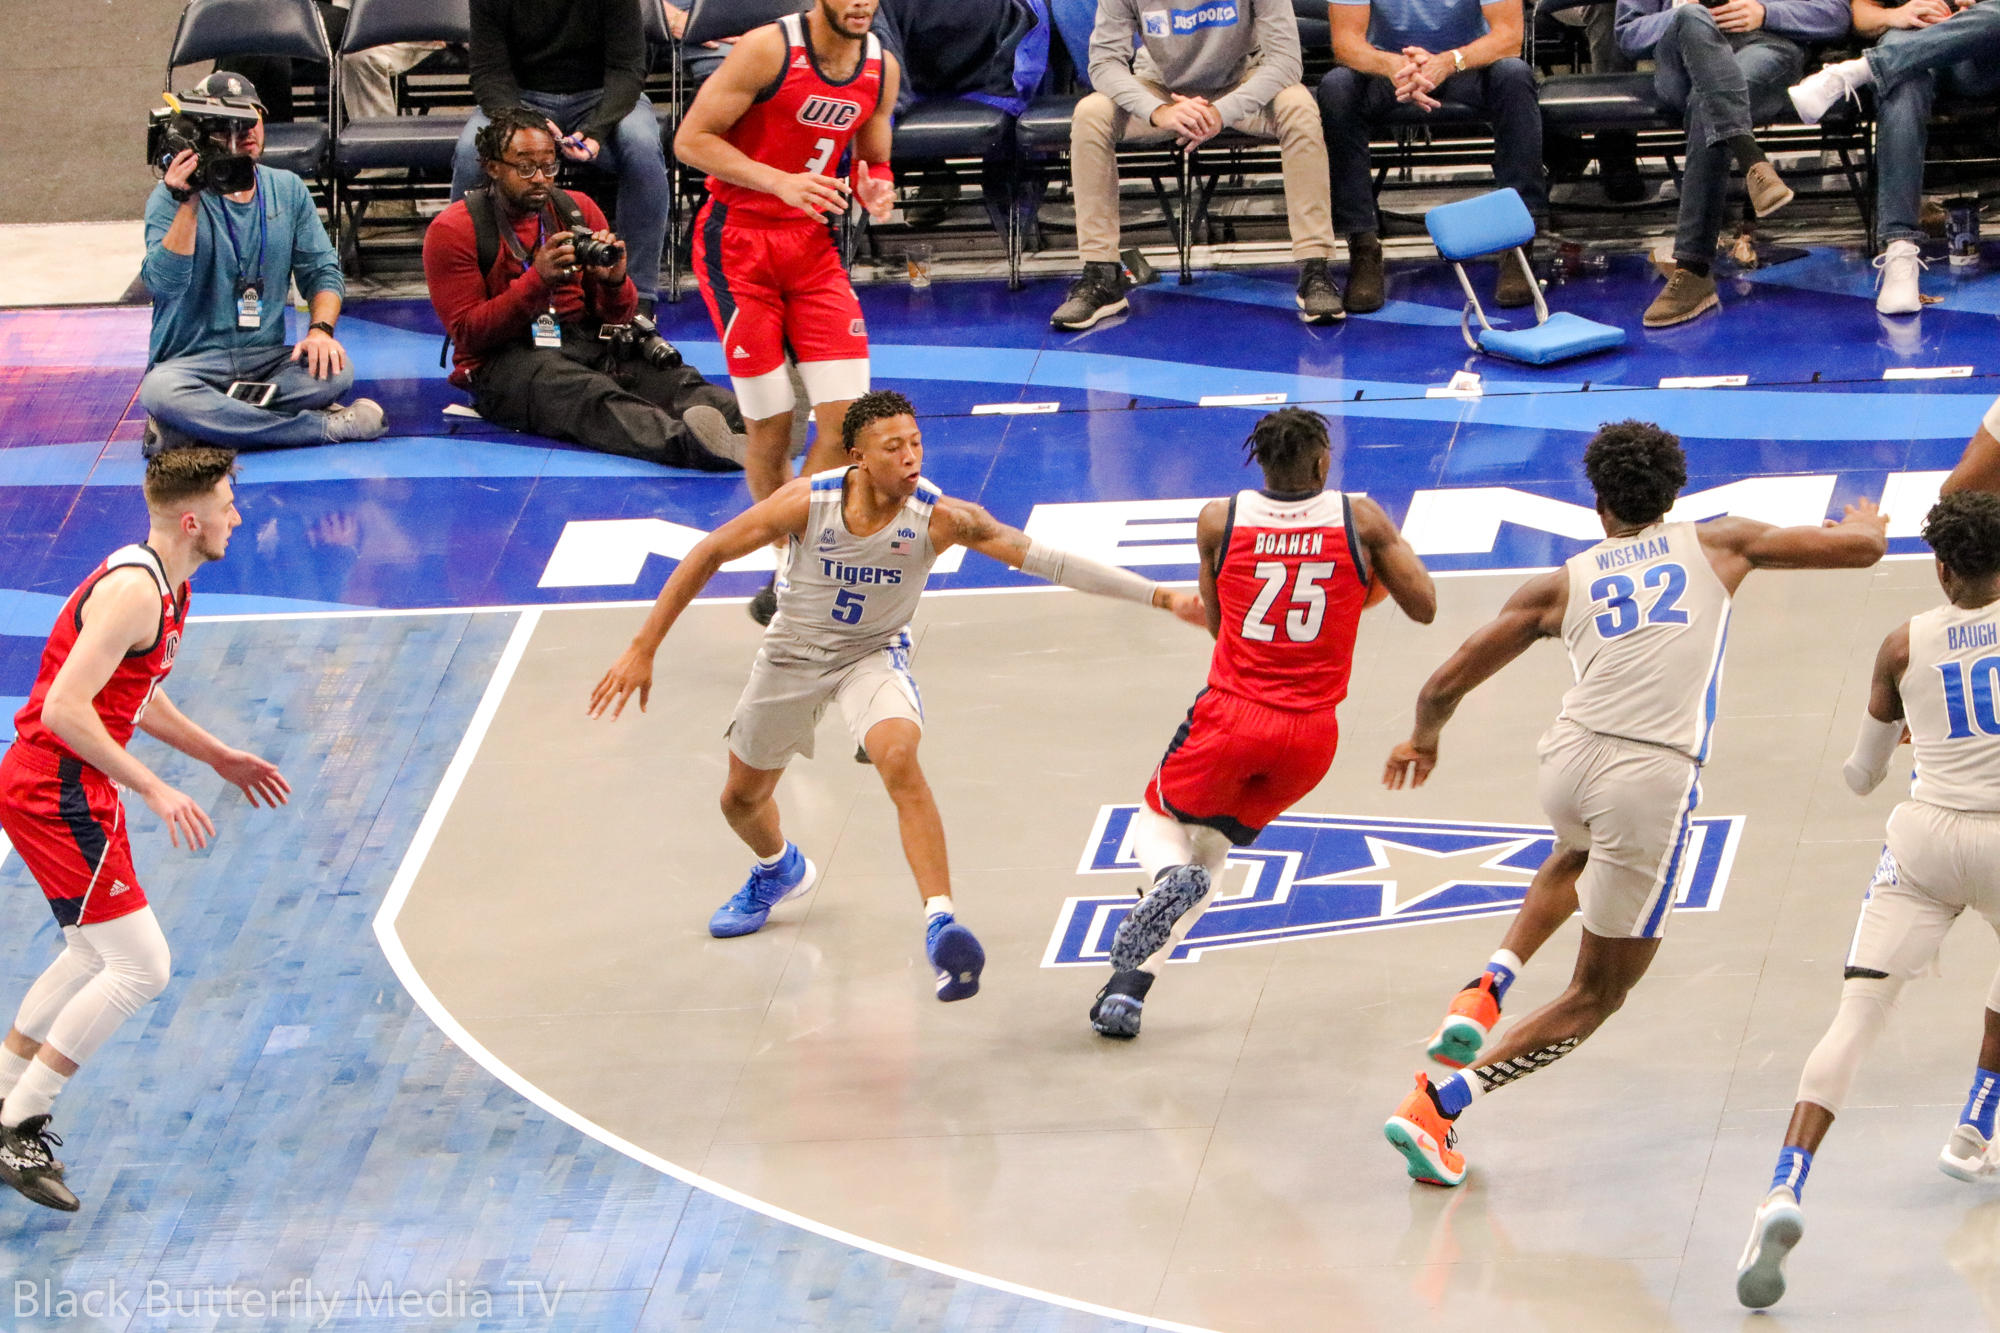 Memphis vs UIC game – Boogie Ellis